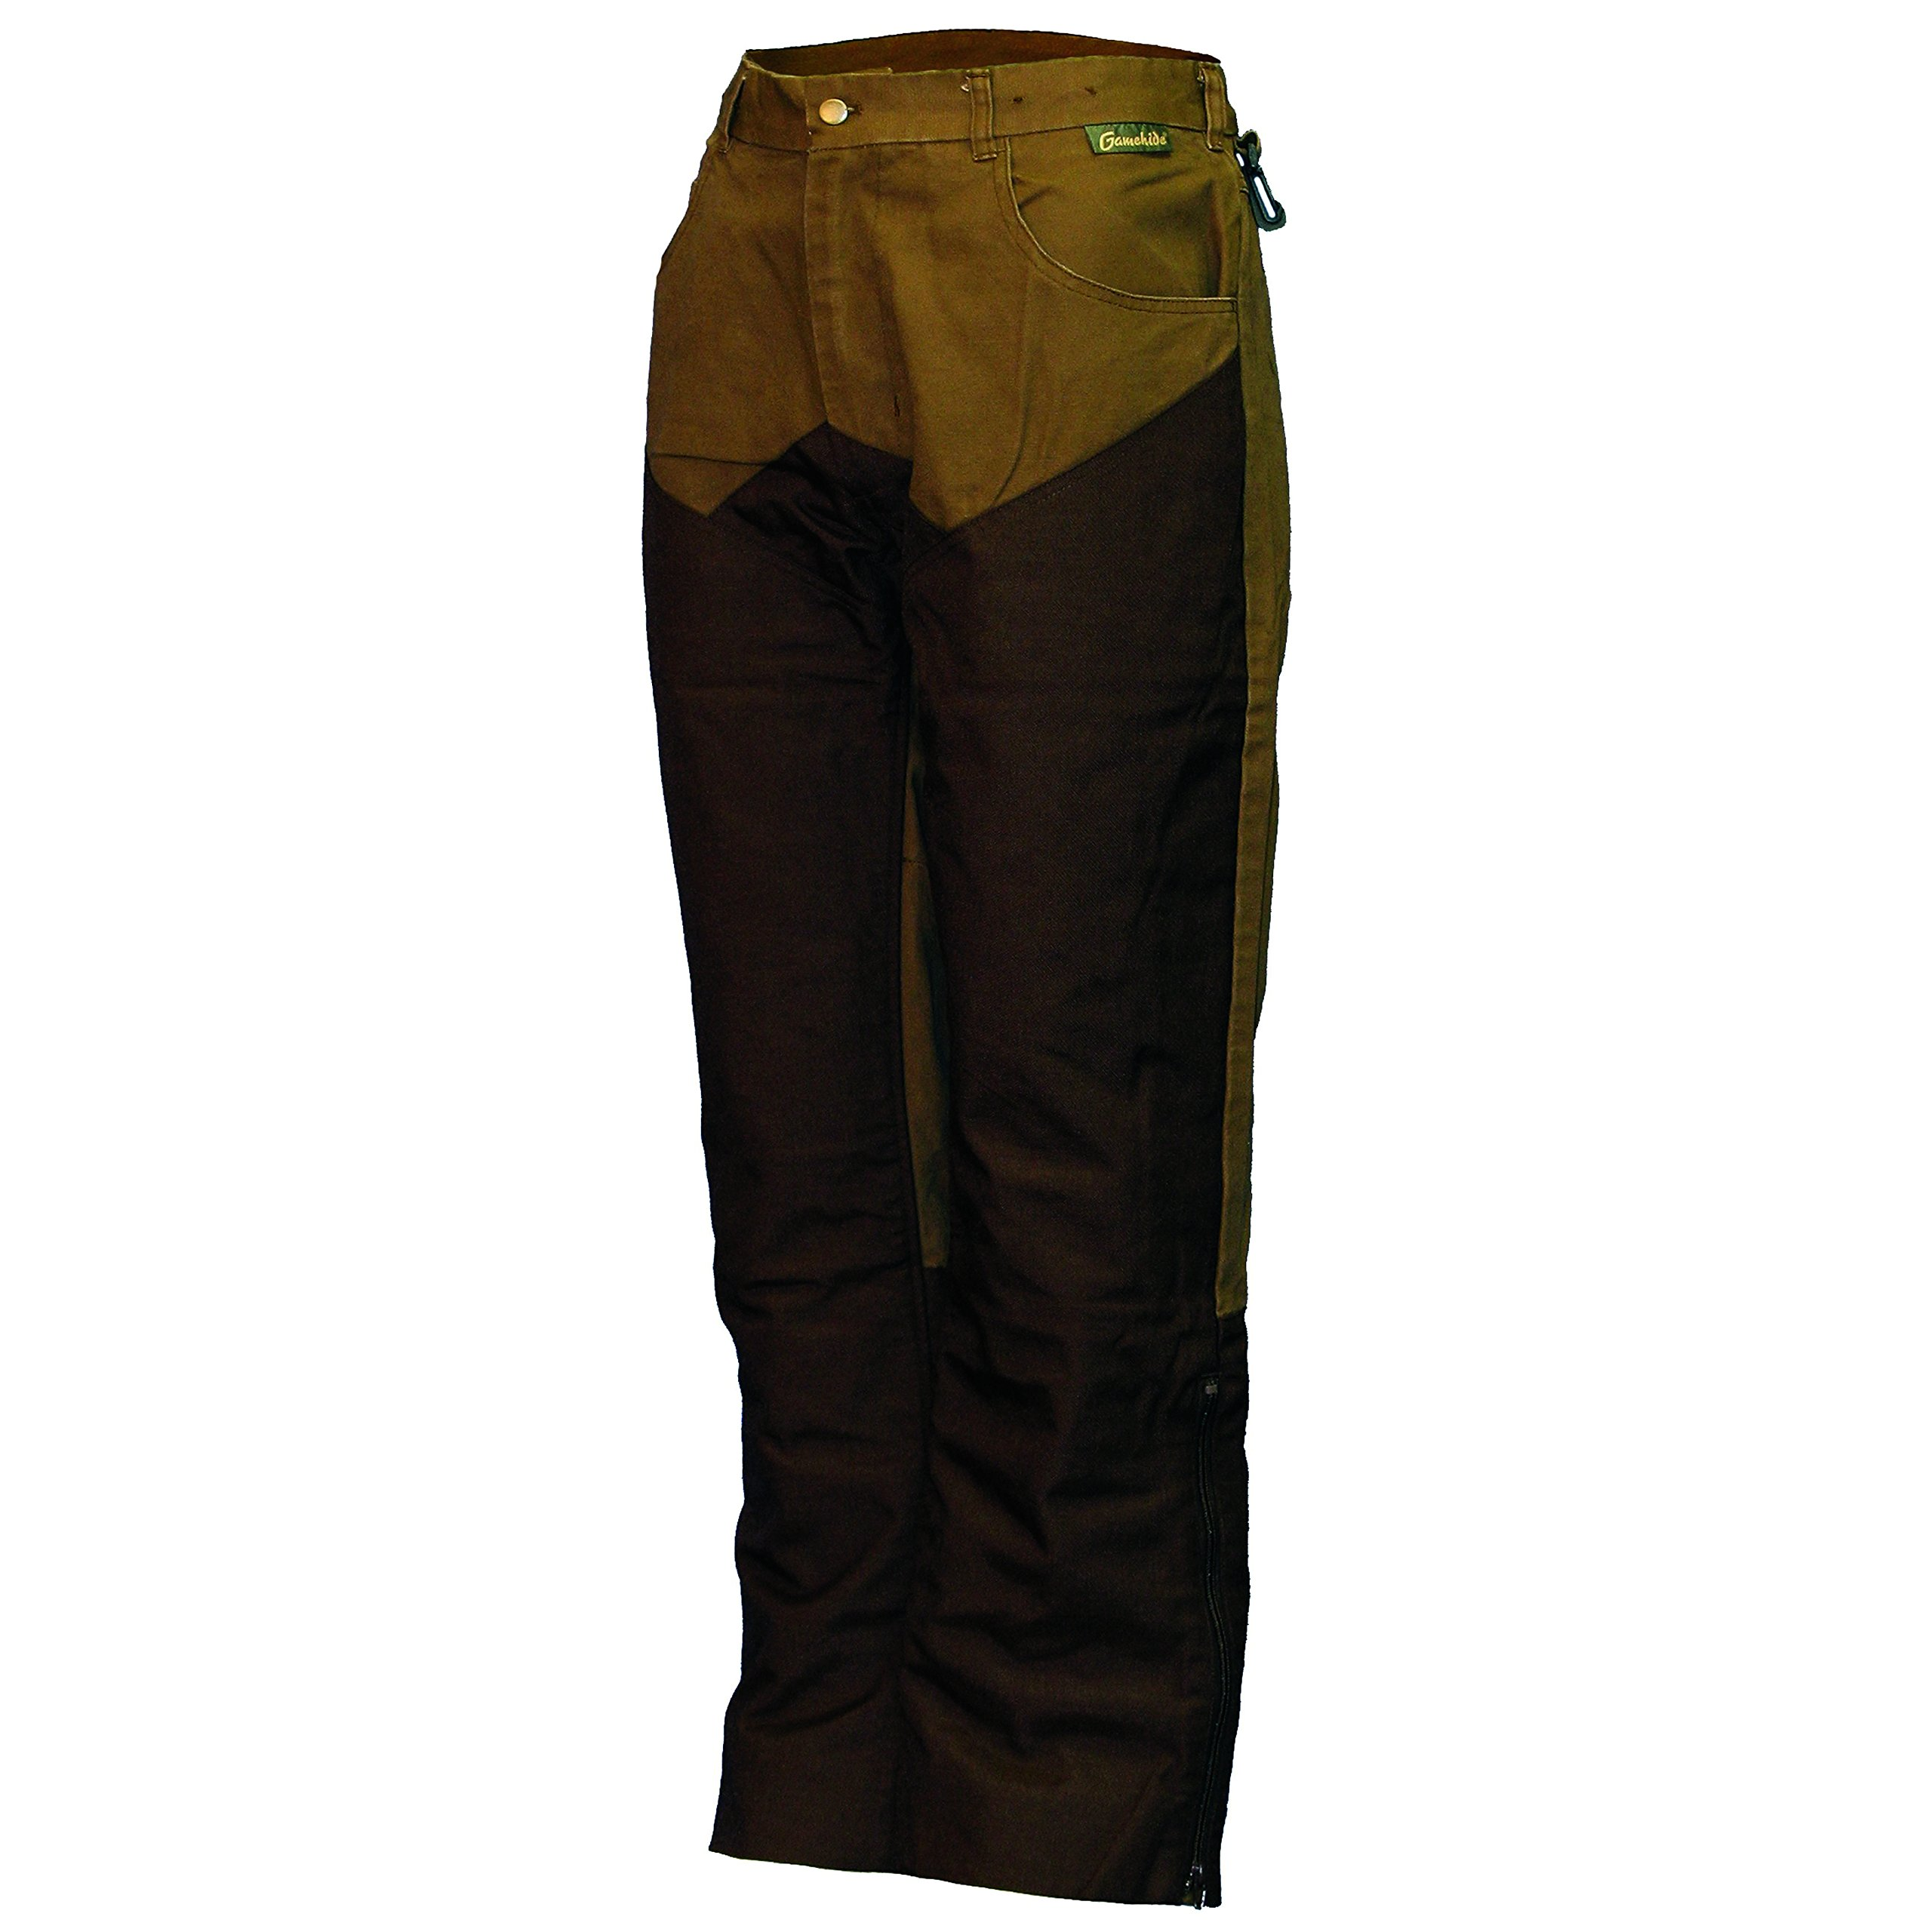 Gamehide Men's Briar-Proof Upland Pants